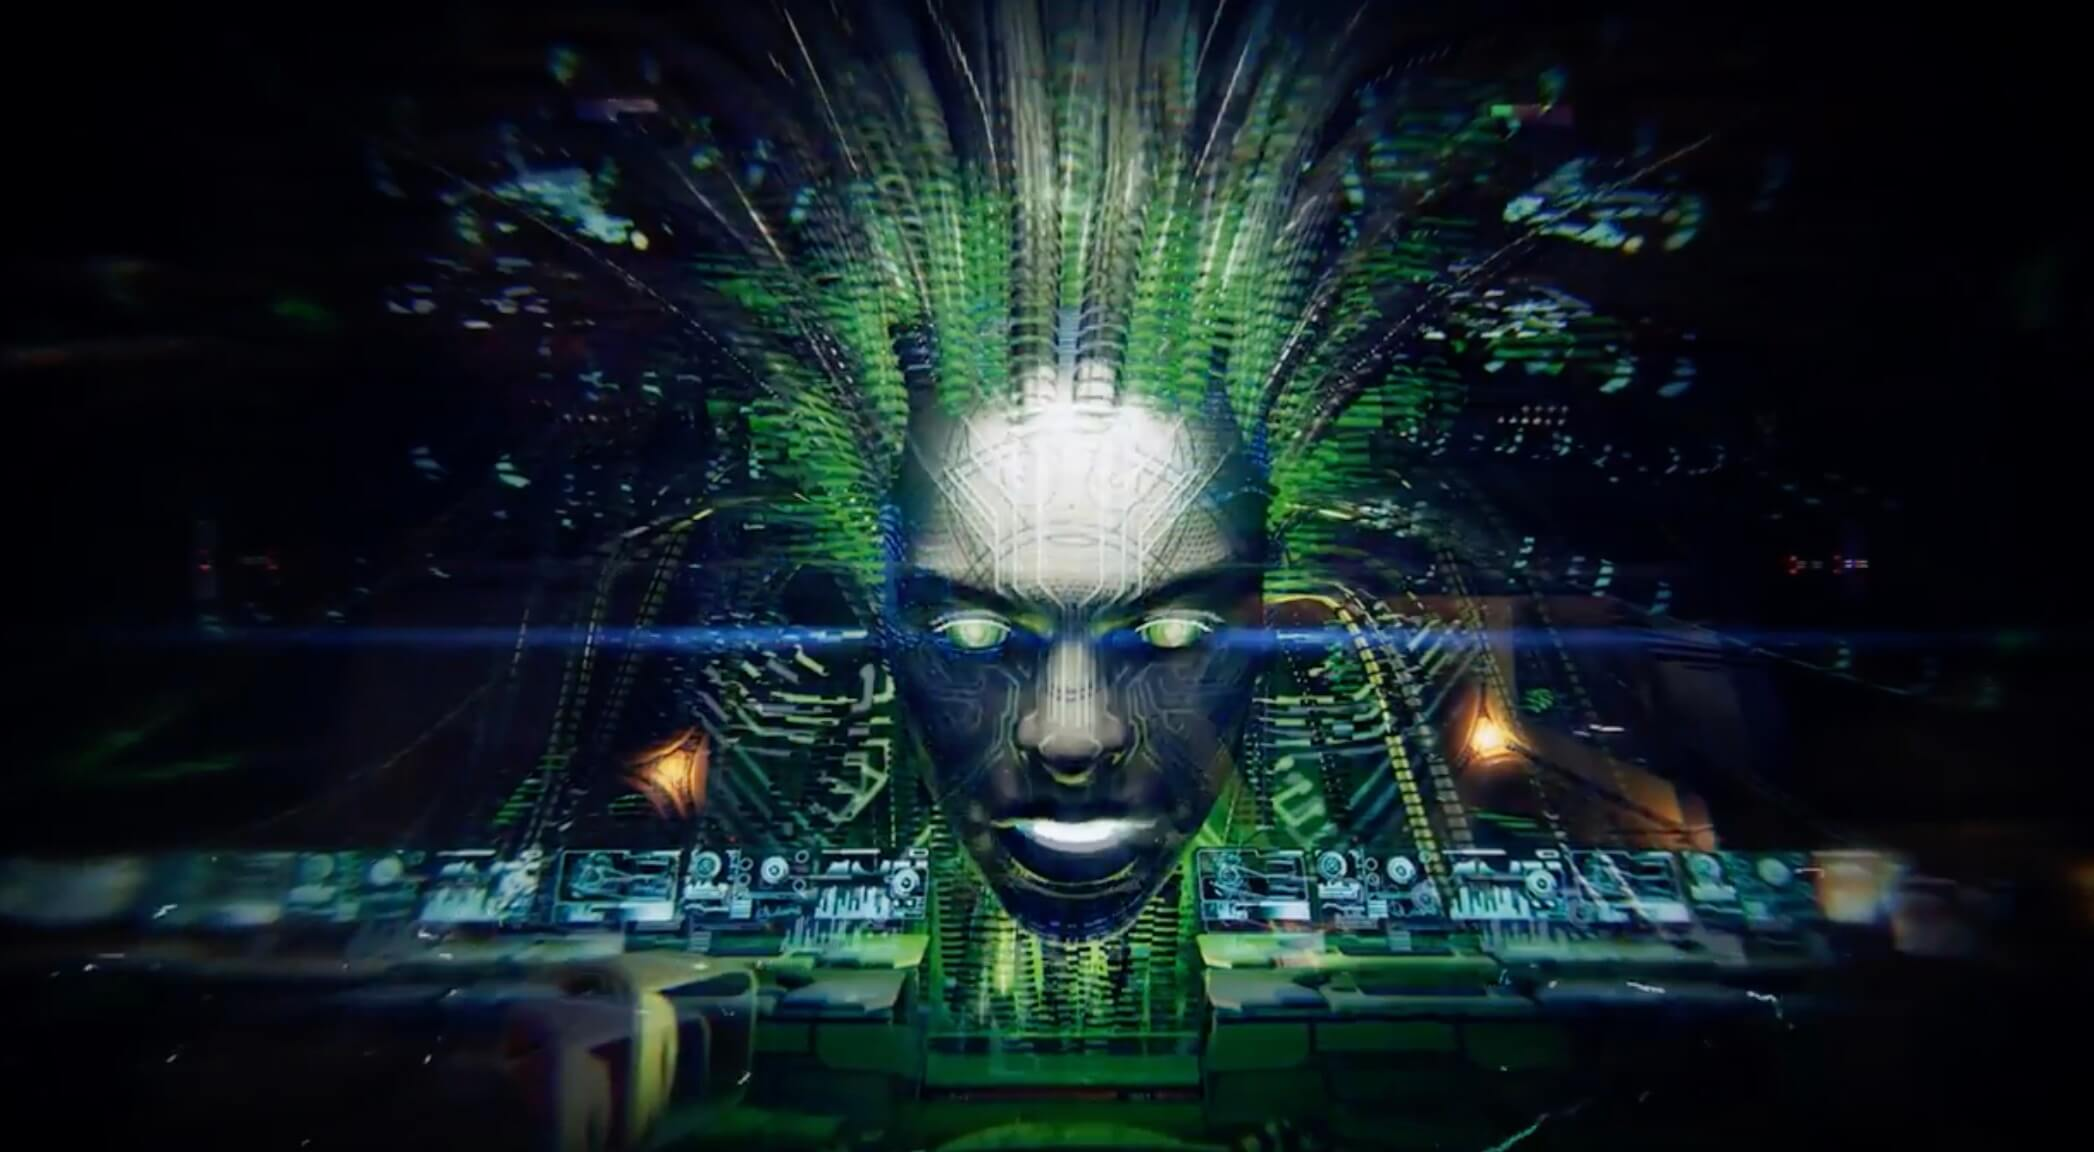 Tencent is now in charge of System Shock 3